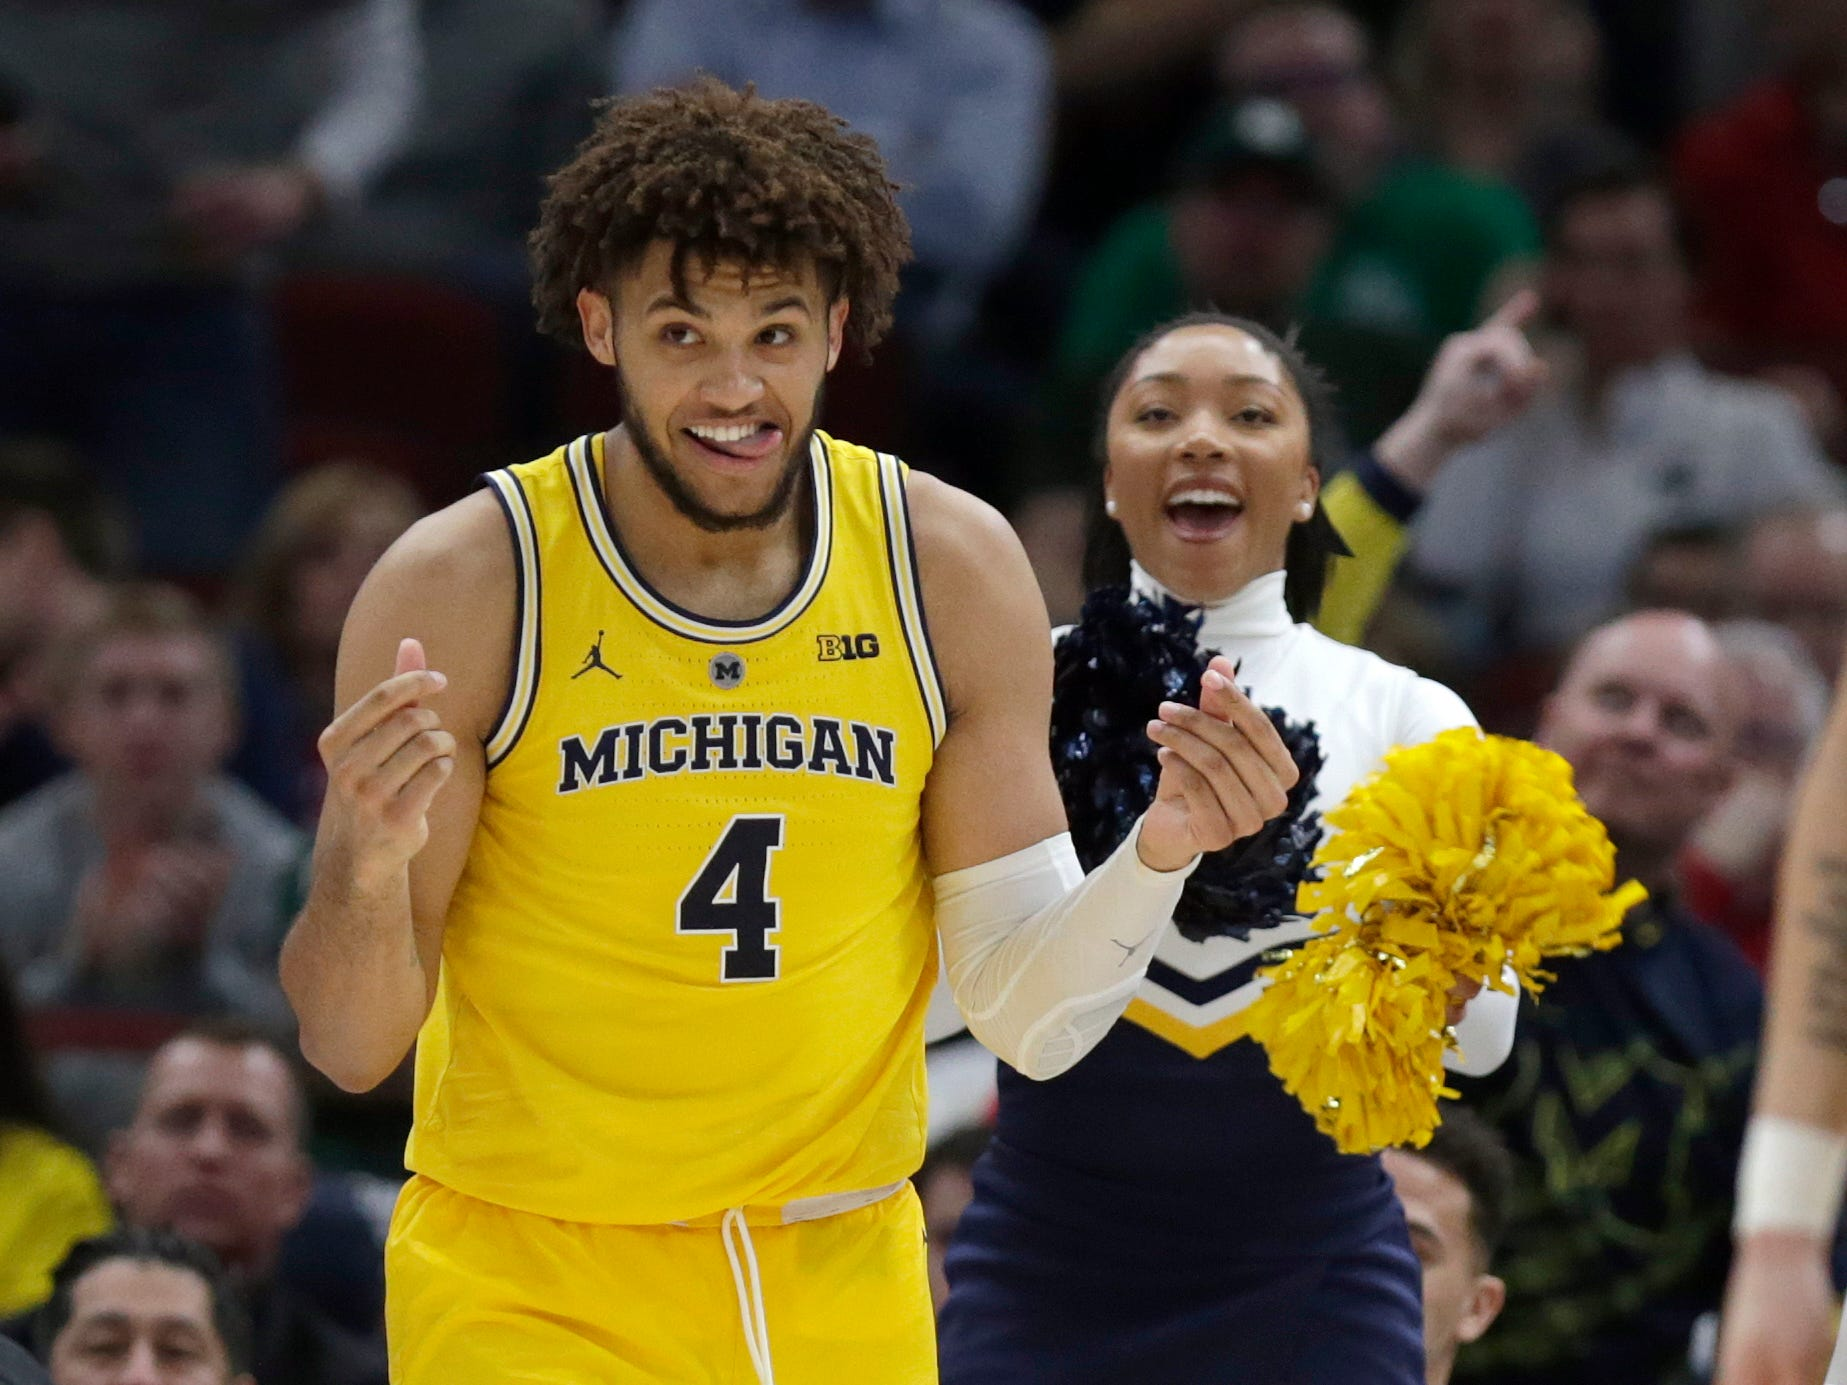 Michigan's Isaiah Livers reacts after making a shot during the second half.